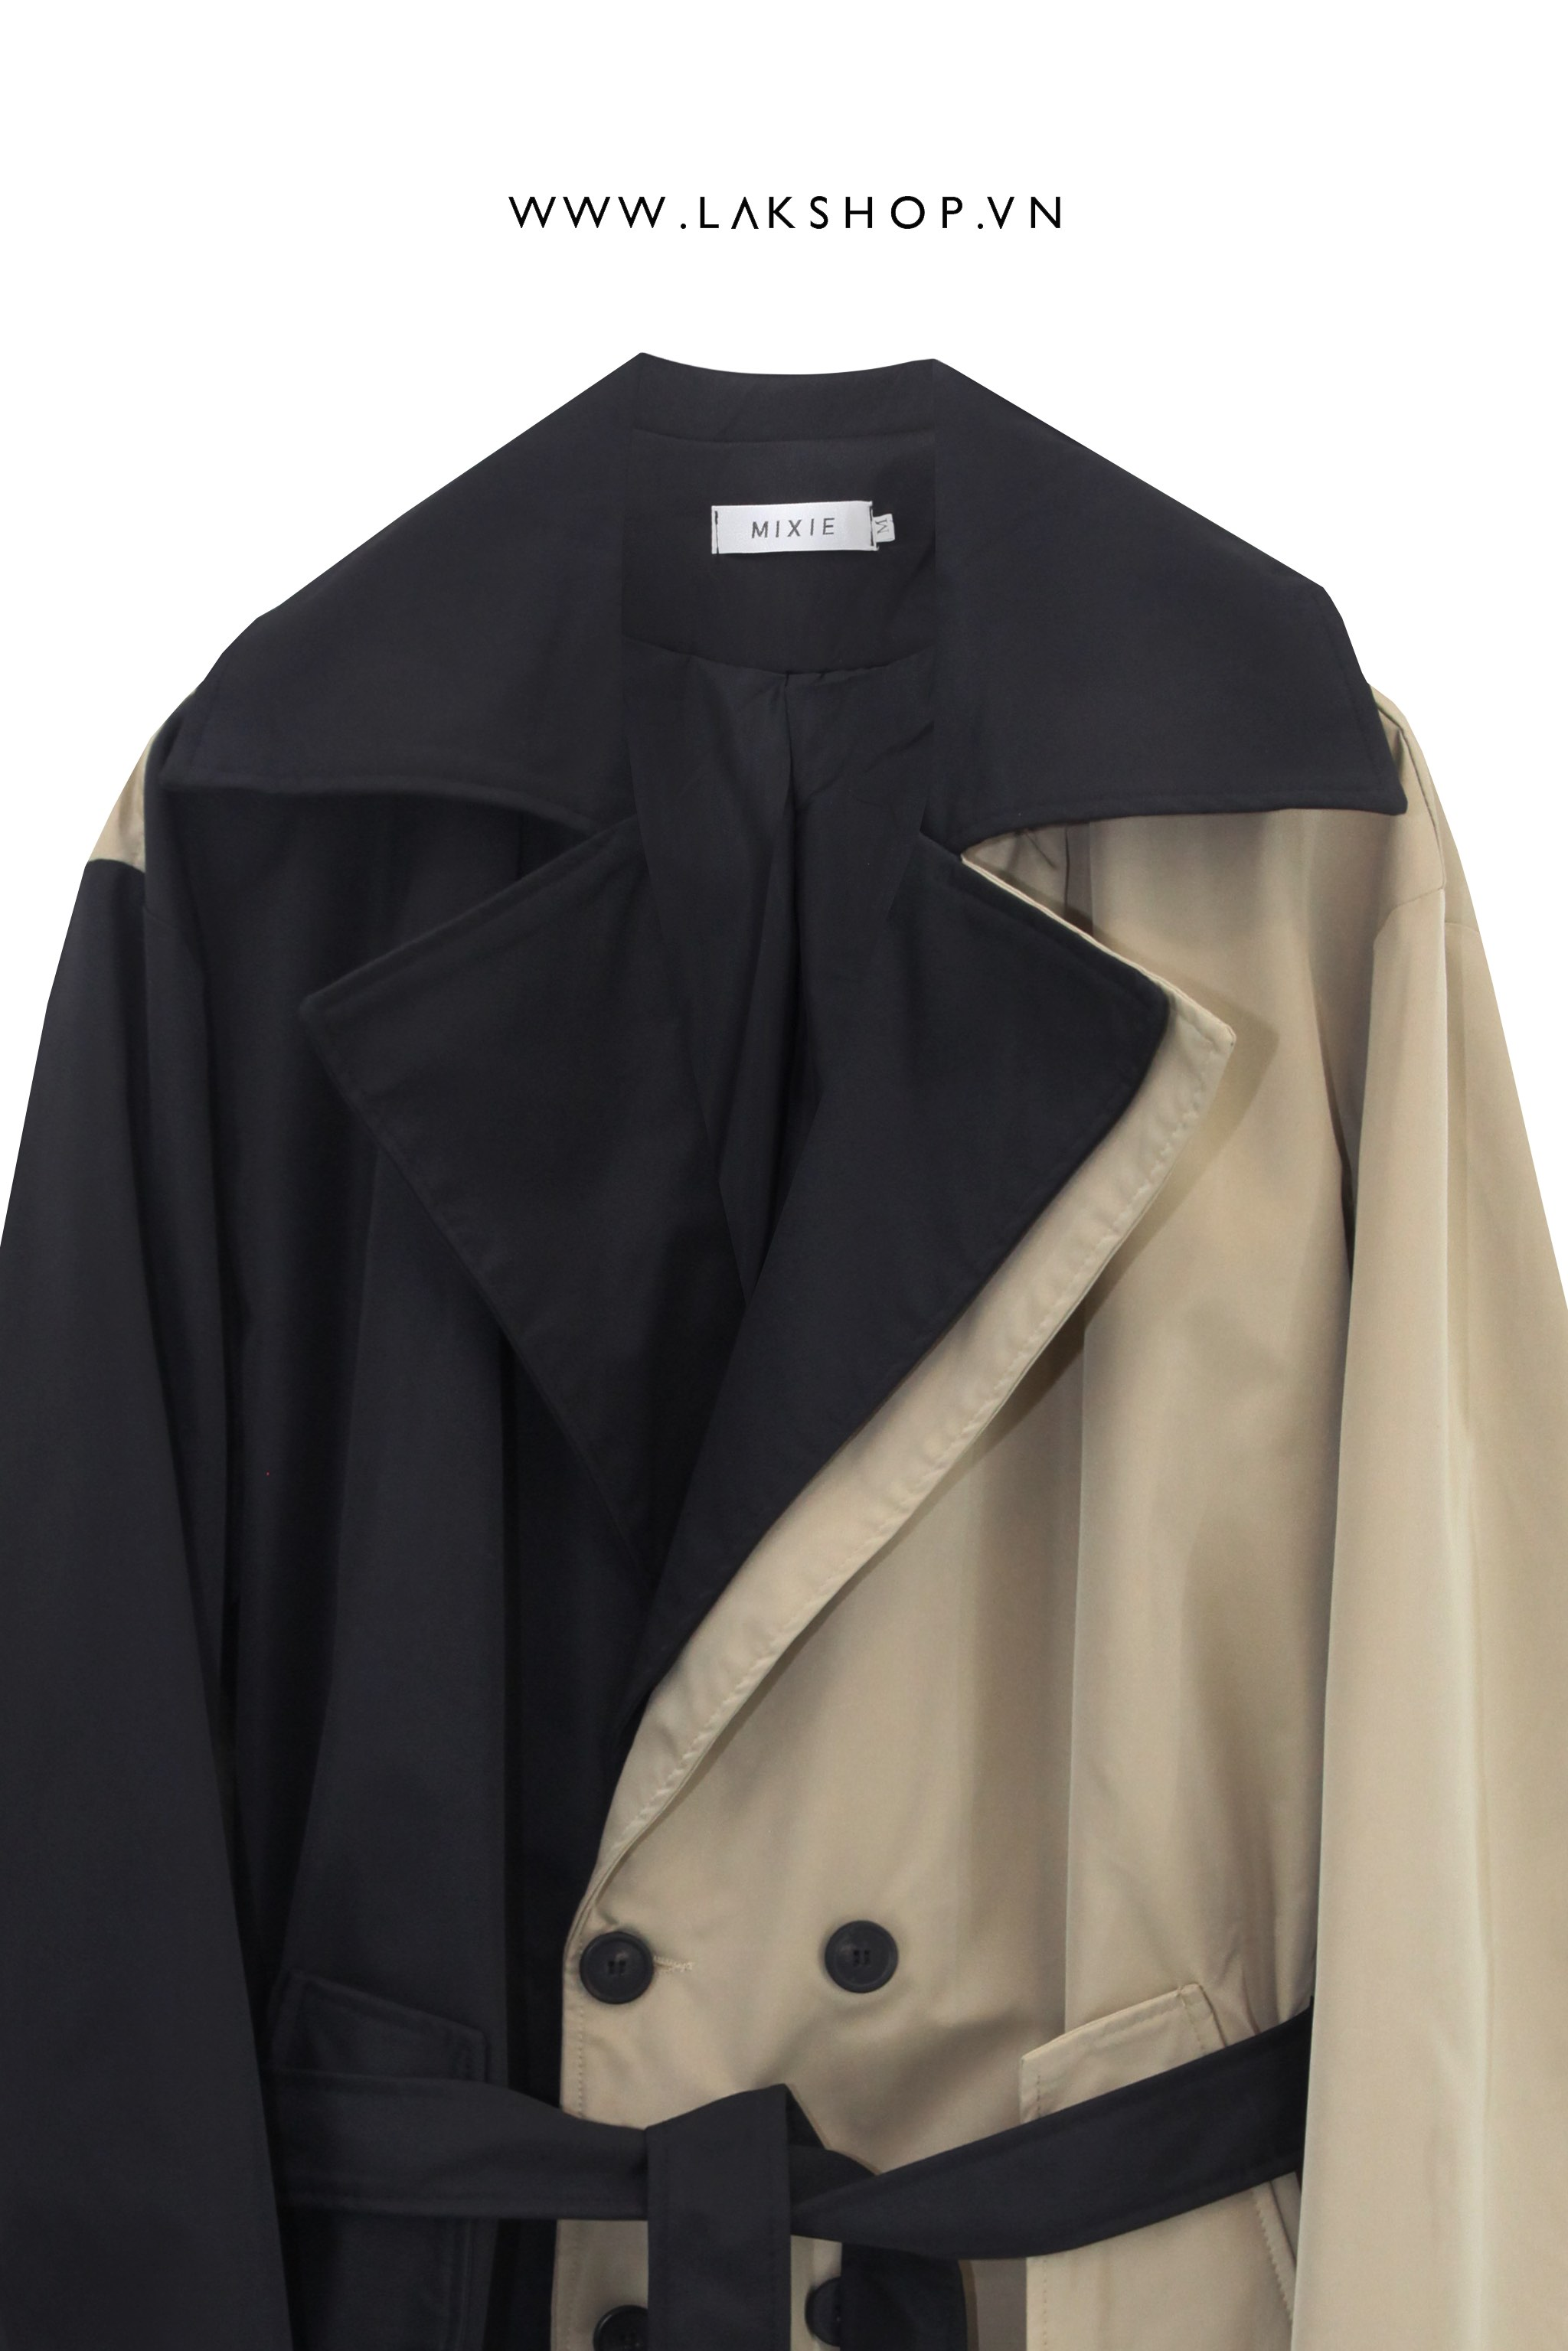 Two-Tone Black Tan Double-Breasted Trench Coat  cv2